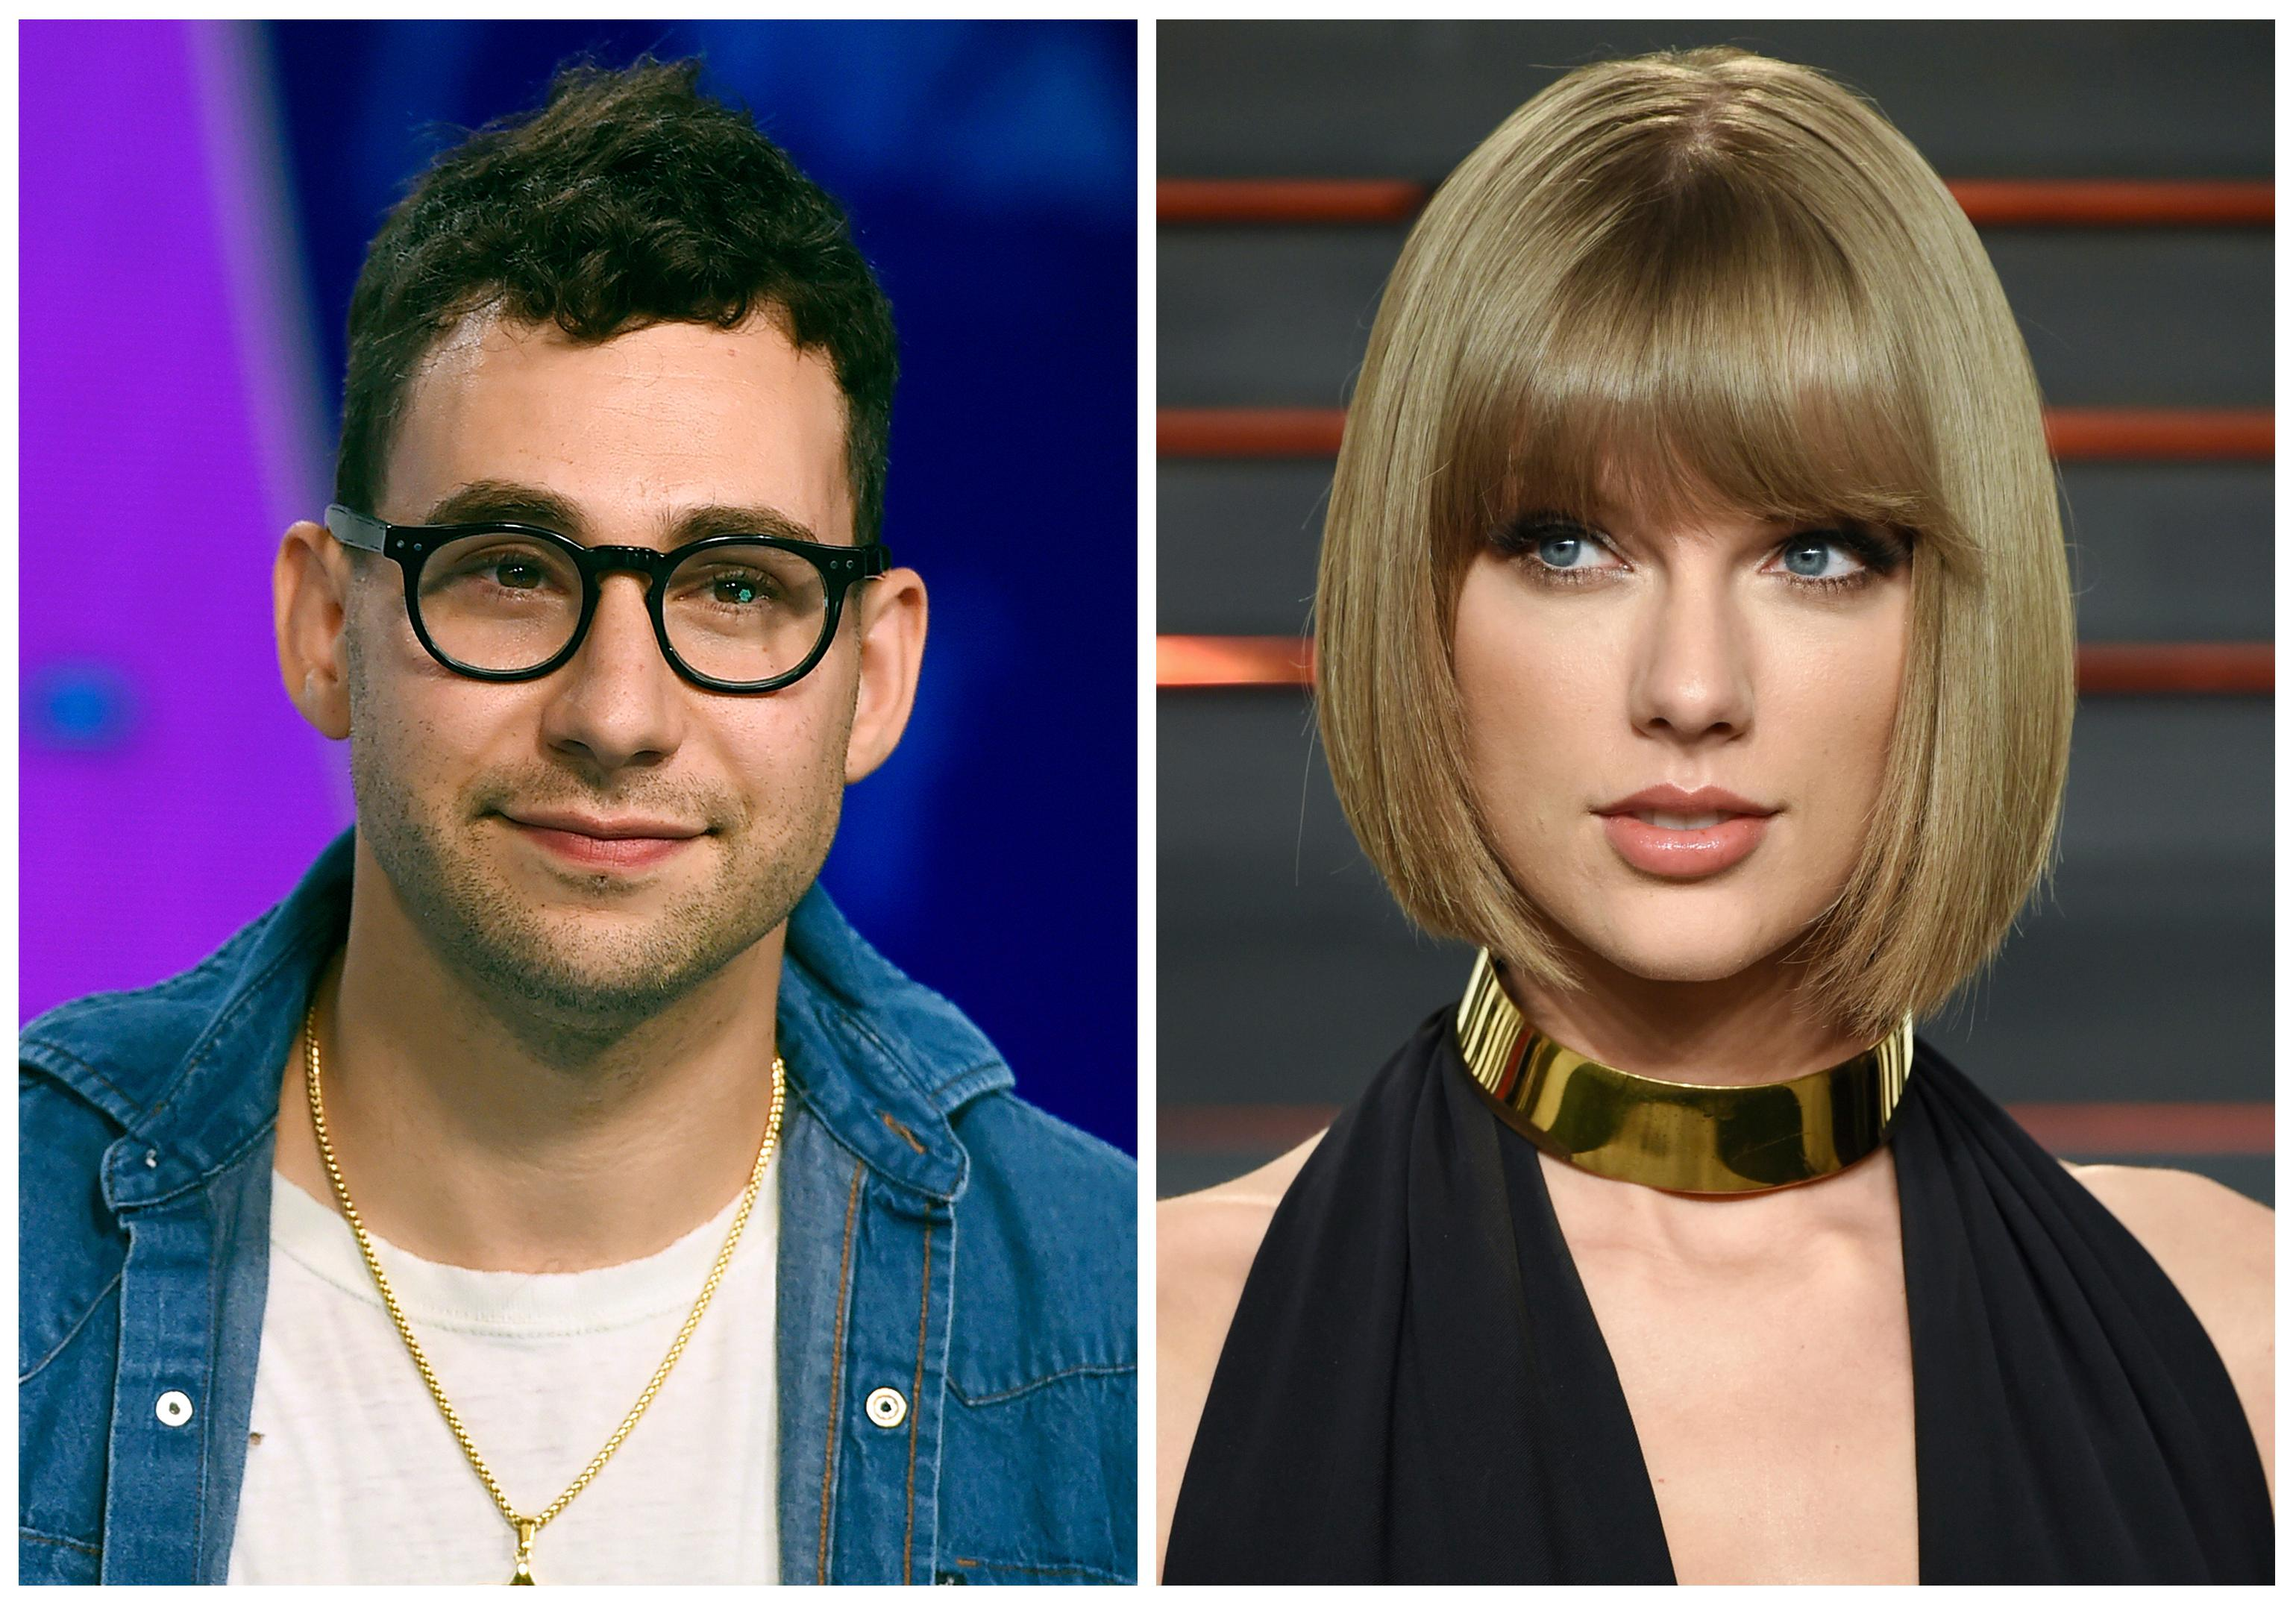 "In this combination photo, music producer  Jack Antonoff appears at the MTV Video Music Awards on Aug. 27, 2017, left, and Taylor Swift attends the Vanity Fair Fair Oscar Party in Beverly Hills, Calif. on Feb. 28, 2016. Antonoff is keeping quiet about who Swift is singing about in her new song, ""Look What You Made Me Do."" Antonoff co-wrote and co-produced the song that is rumored to be about Kanye West. (Photos by Jordan Strauss, left, and Evan Agostini/Invision/AP, File)"